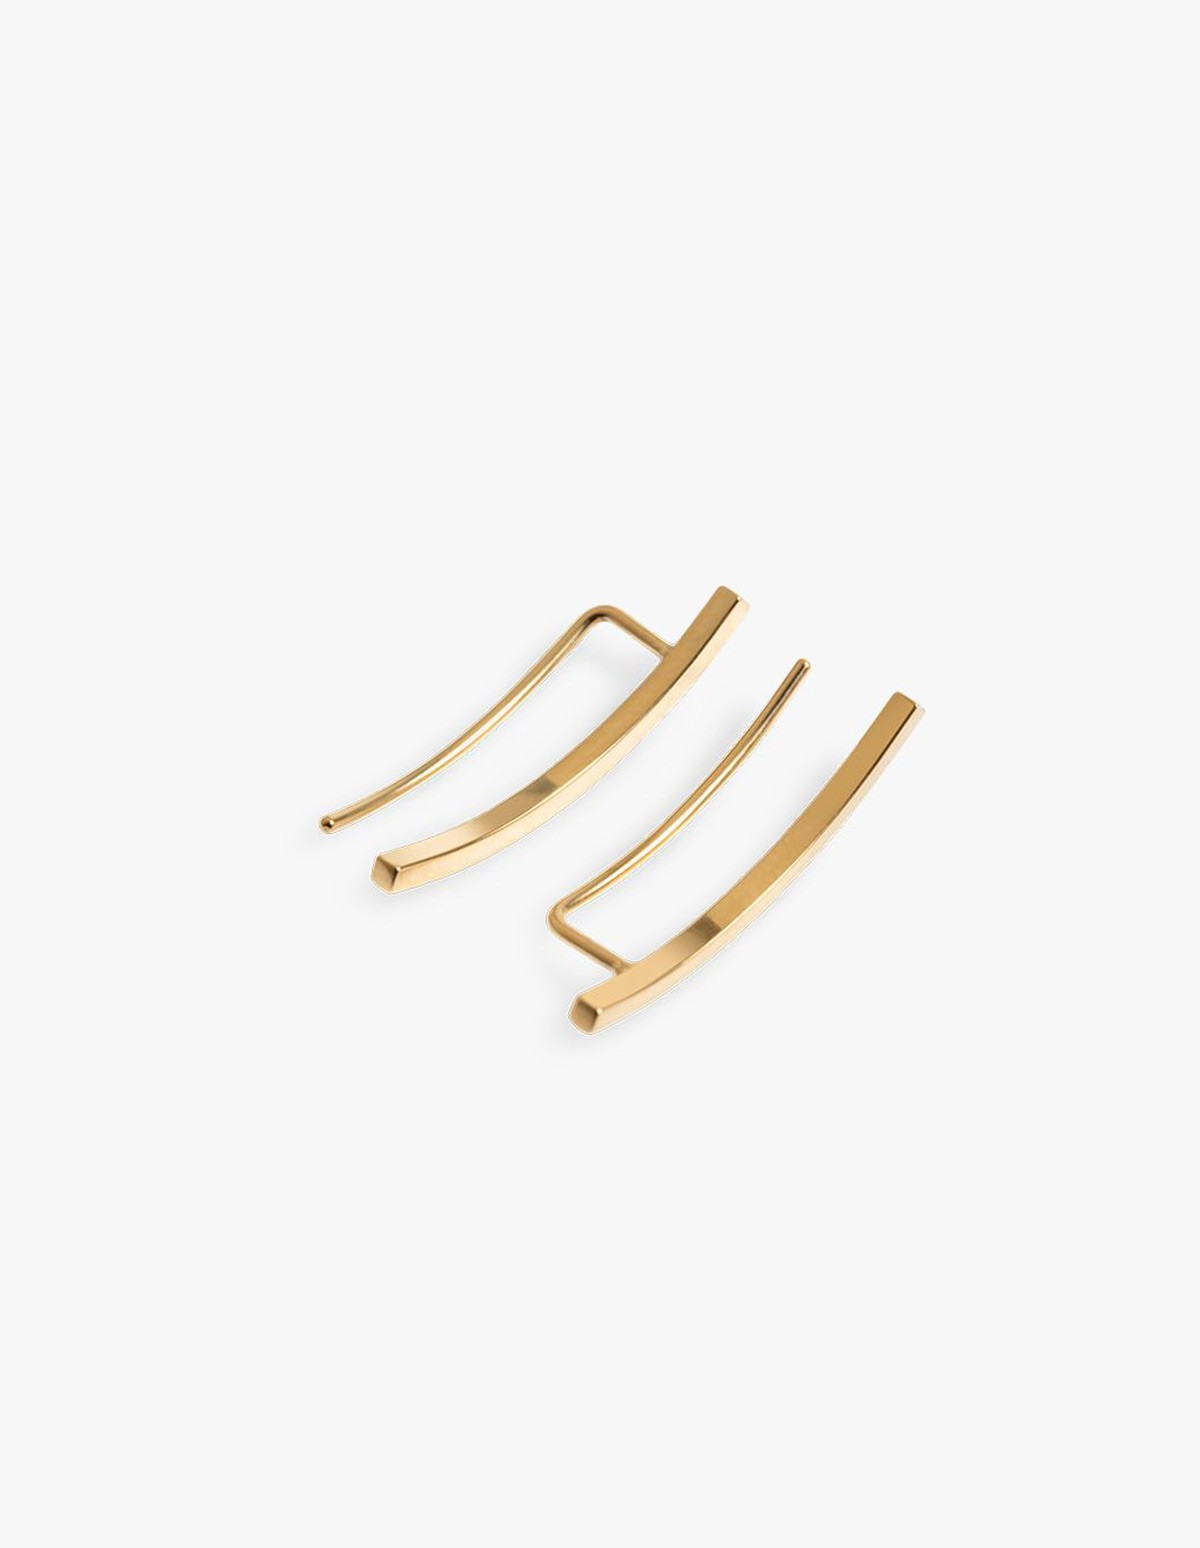 The Boyscouts Phase Earring Gold - Pair in Gold